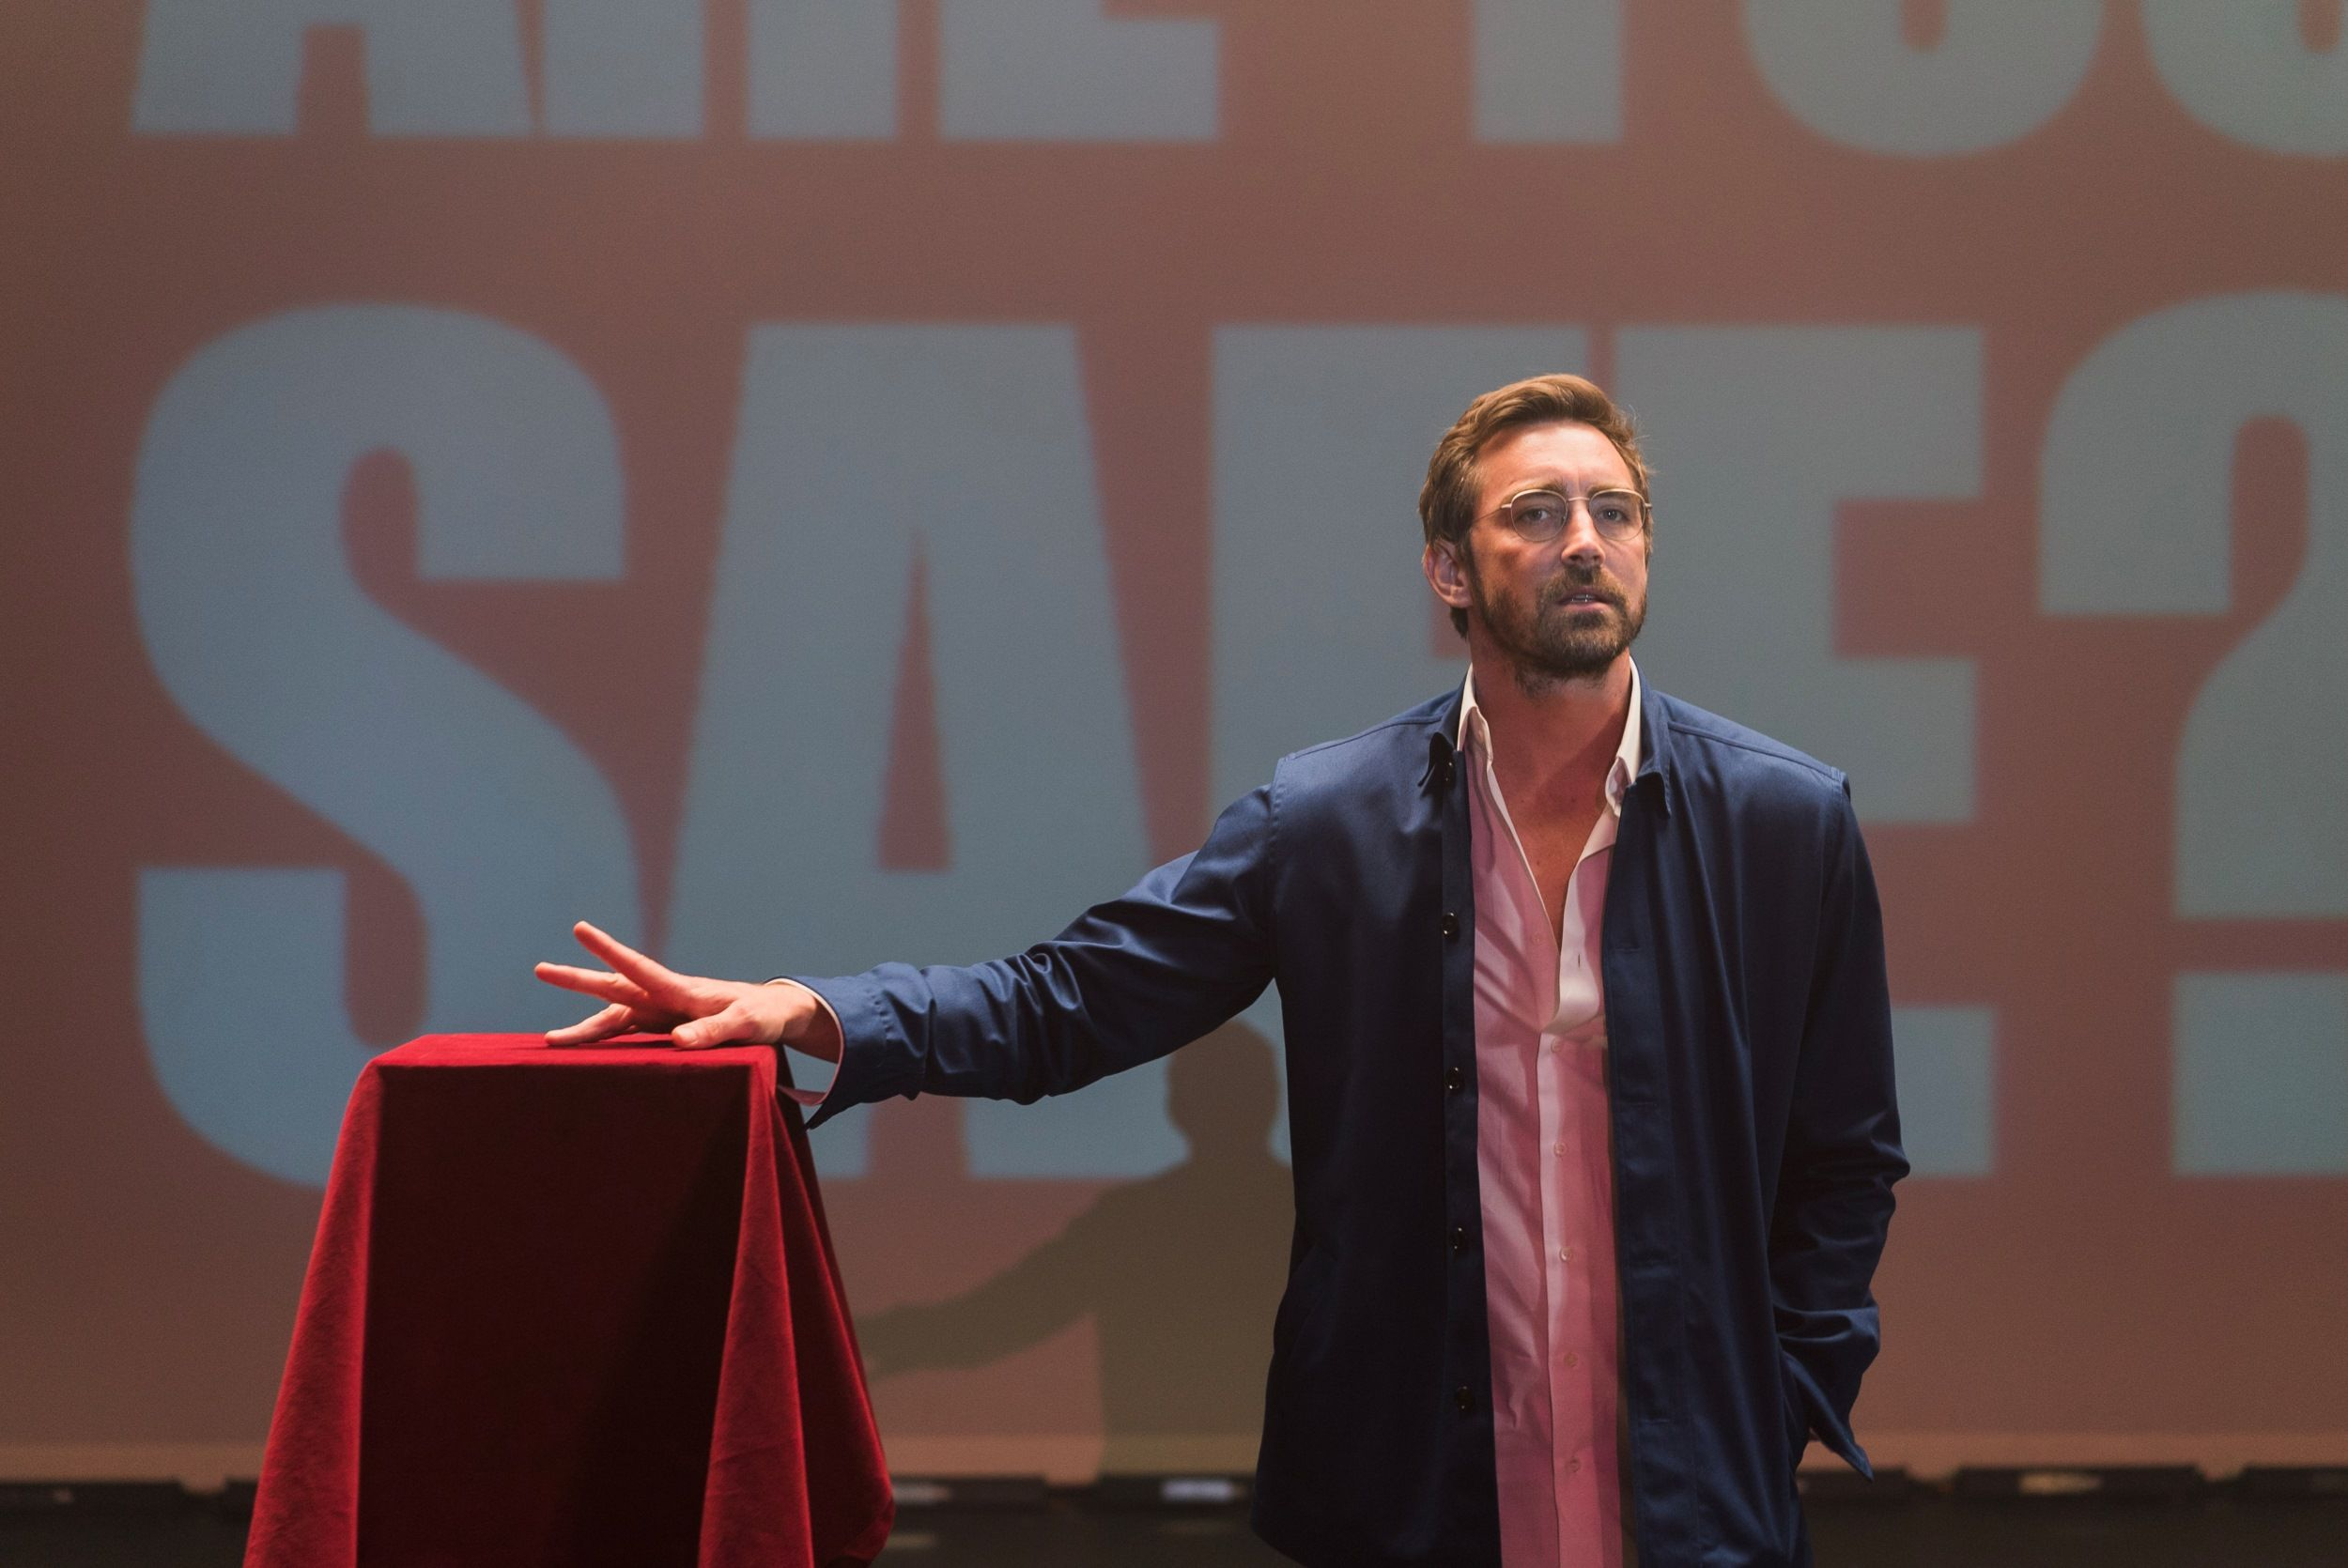 Evil marketing mastermind Joe (Lee Pace) announces the consumer version of his antivirus software, which is clearly a reference to McAfee.